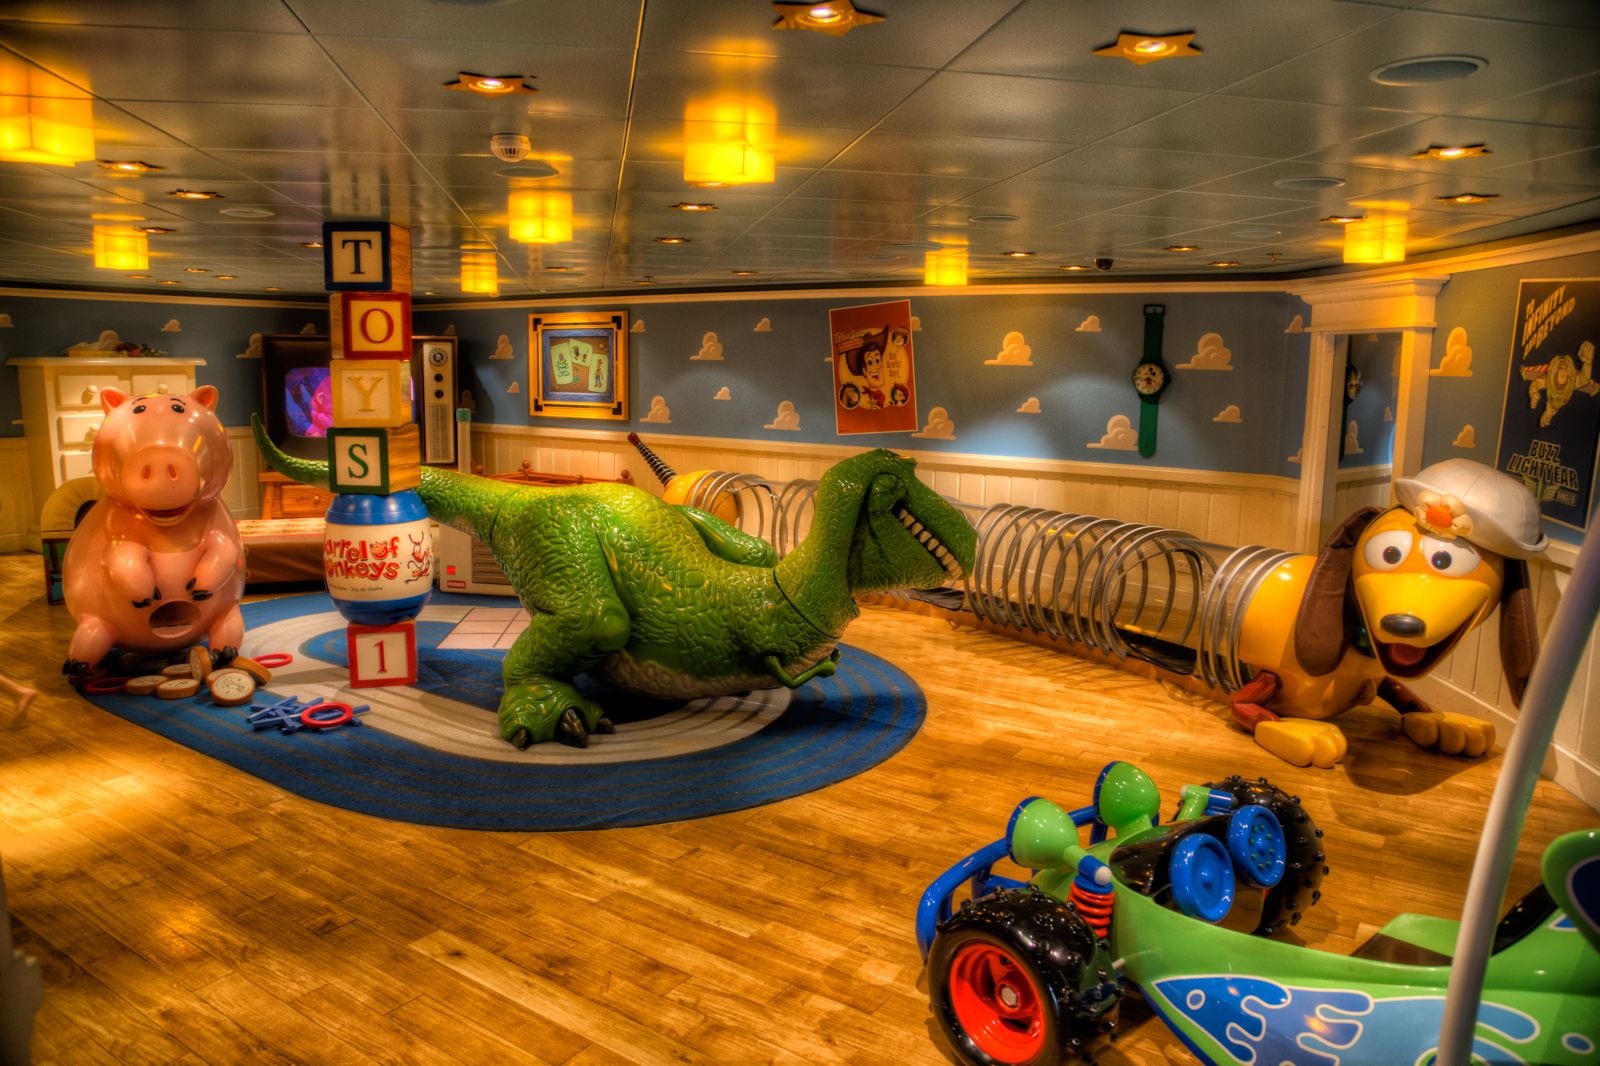 Disney Dream - Oceaneer's Lab - Toy Story